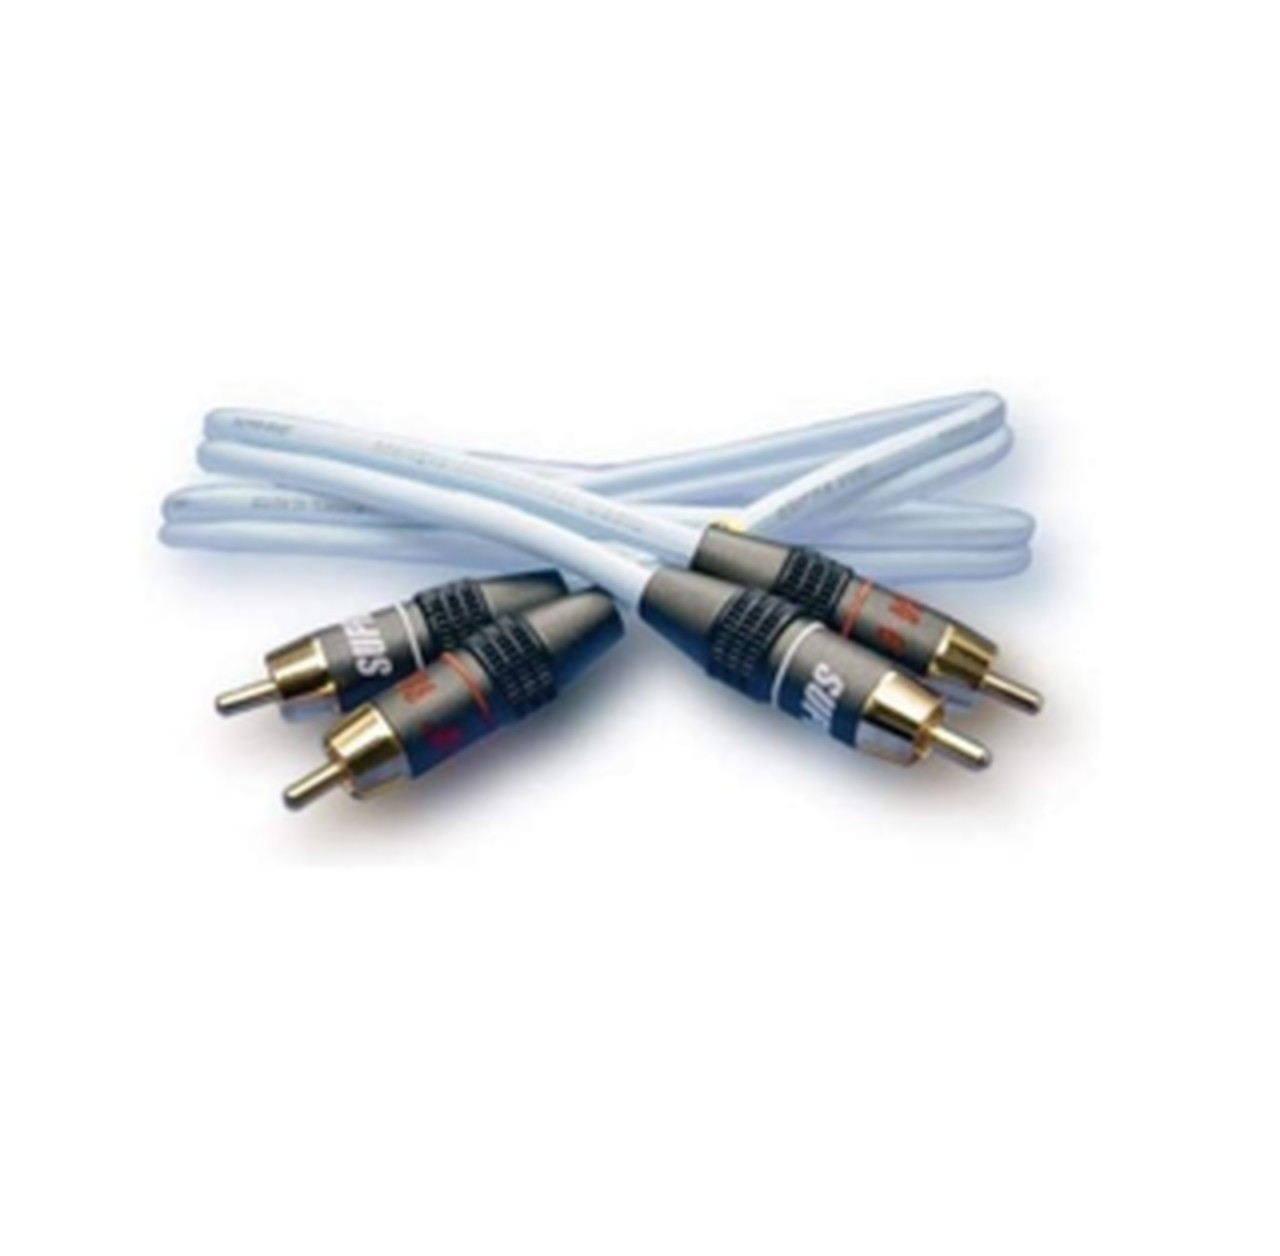 Supra Cables EFF-IX analogue interconnect - 2RCA-2RCA - 1m